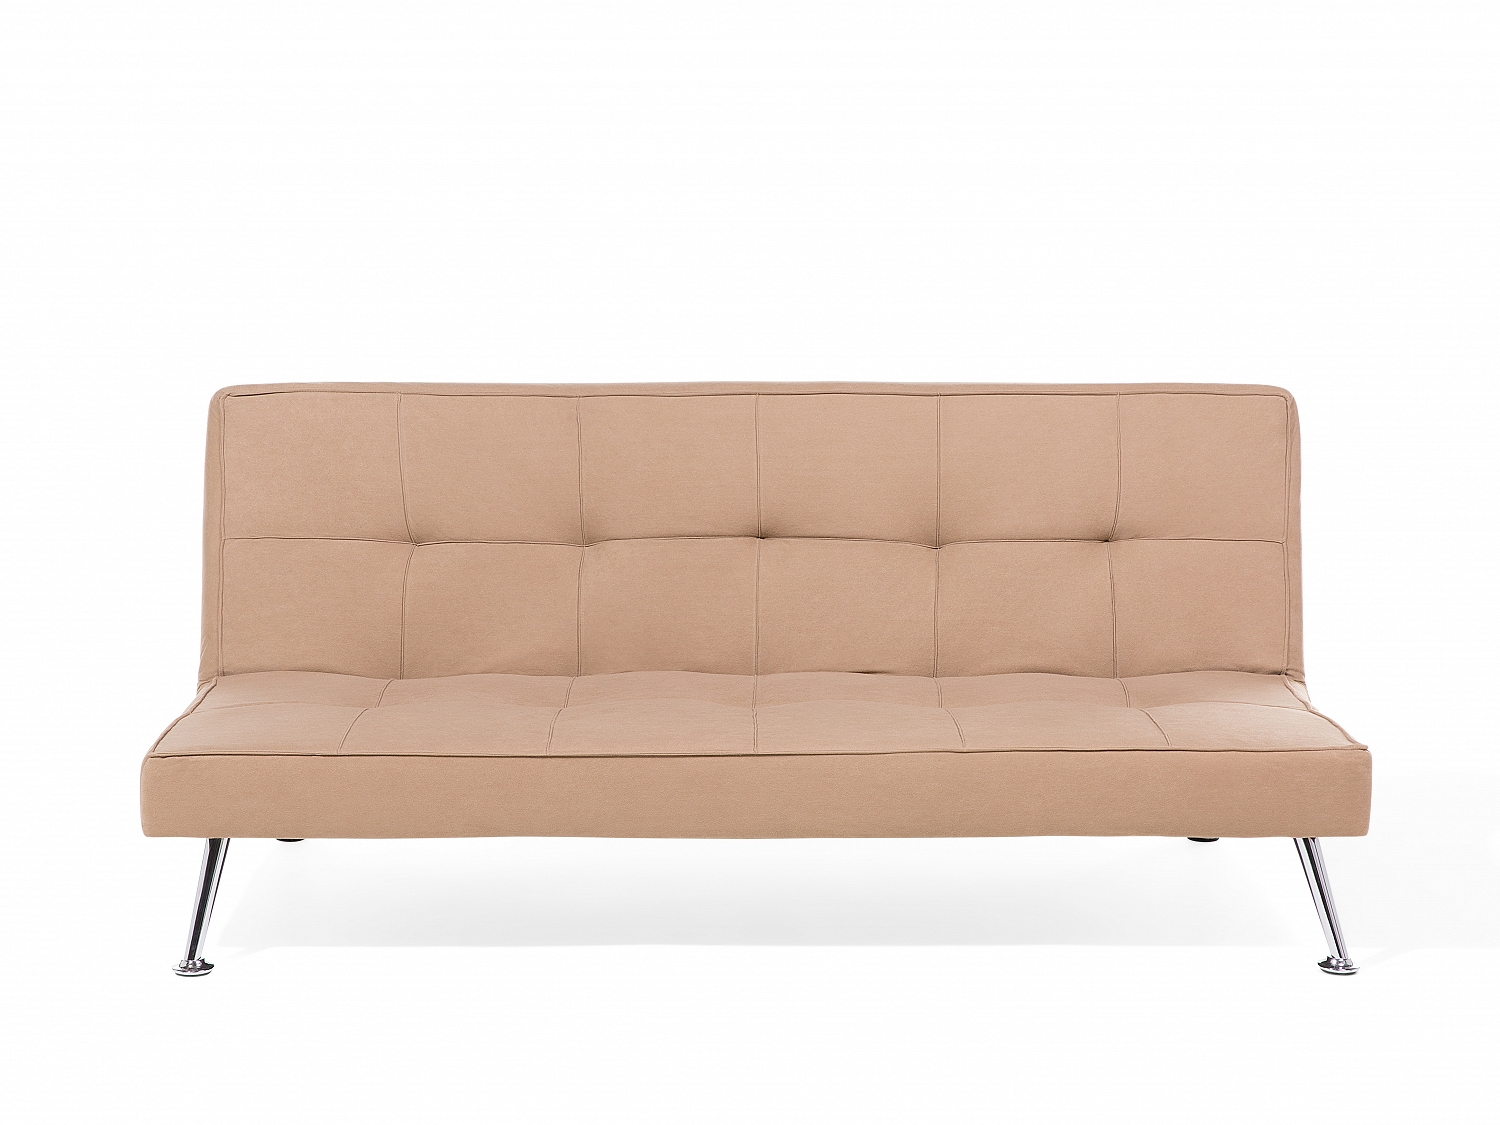 sofa bed fabric beige 3 seater tufted chrome legs ebay. Black Bedroom Furniture Sets. Home Design Ideas